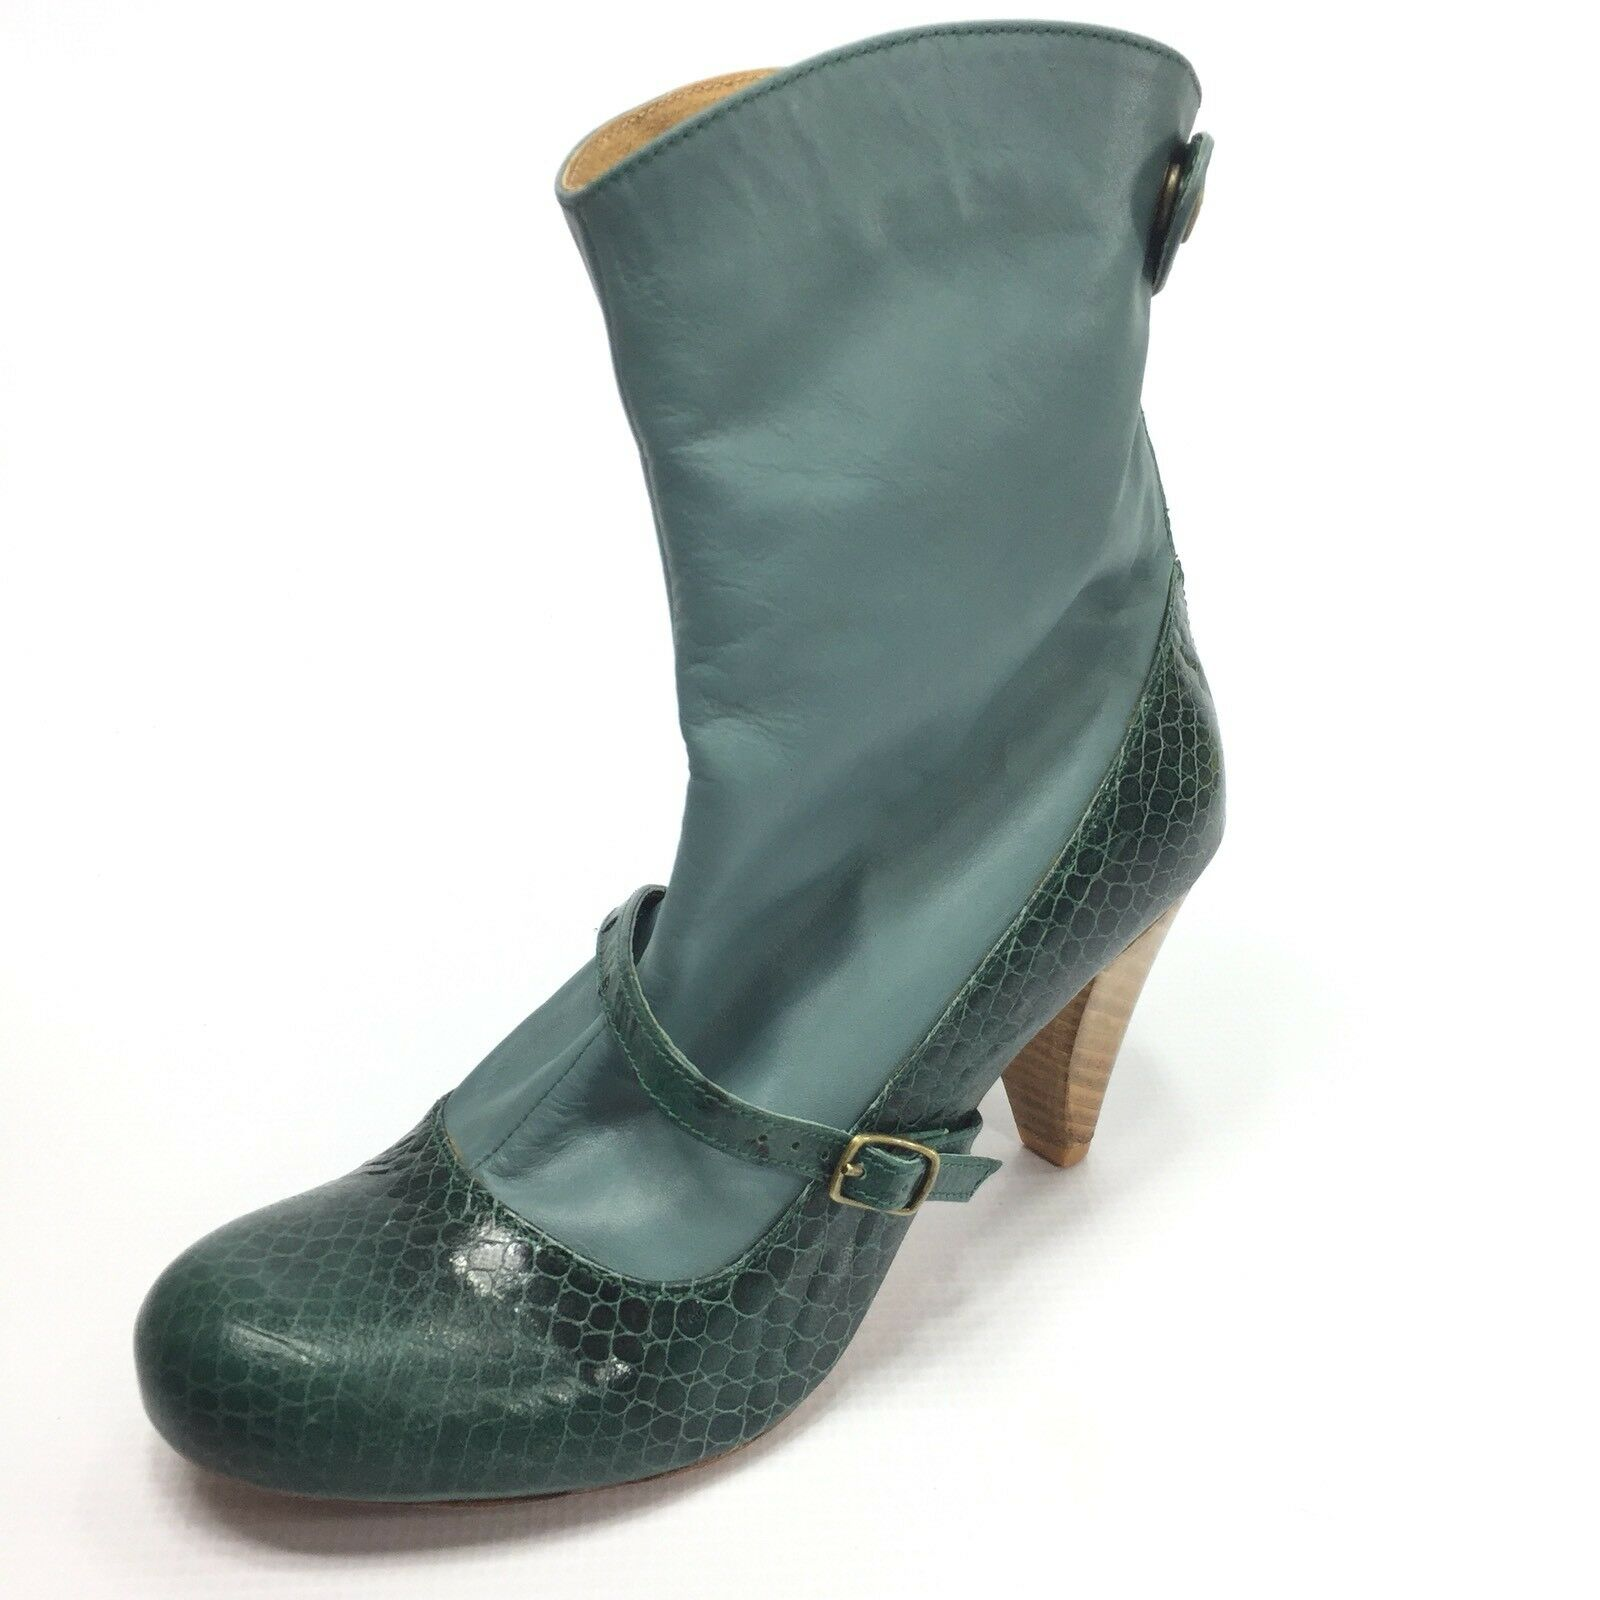 J. SHOES Swoon Women's Zip Ankle Heeled Granny Bootie Green Snake print NEW